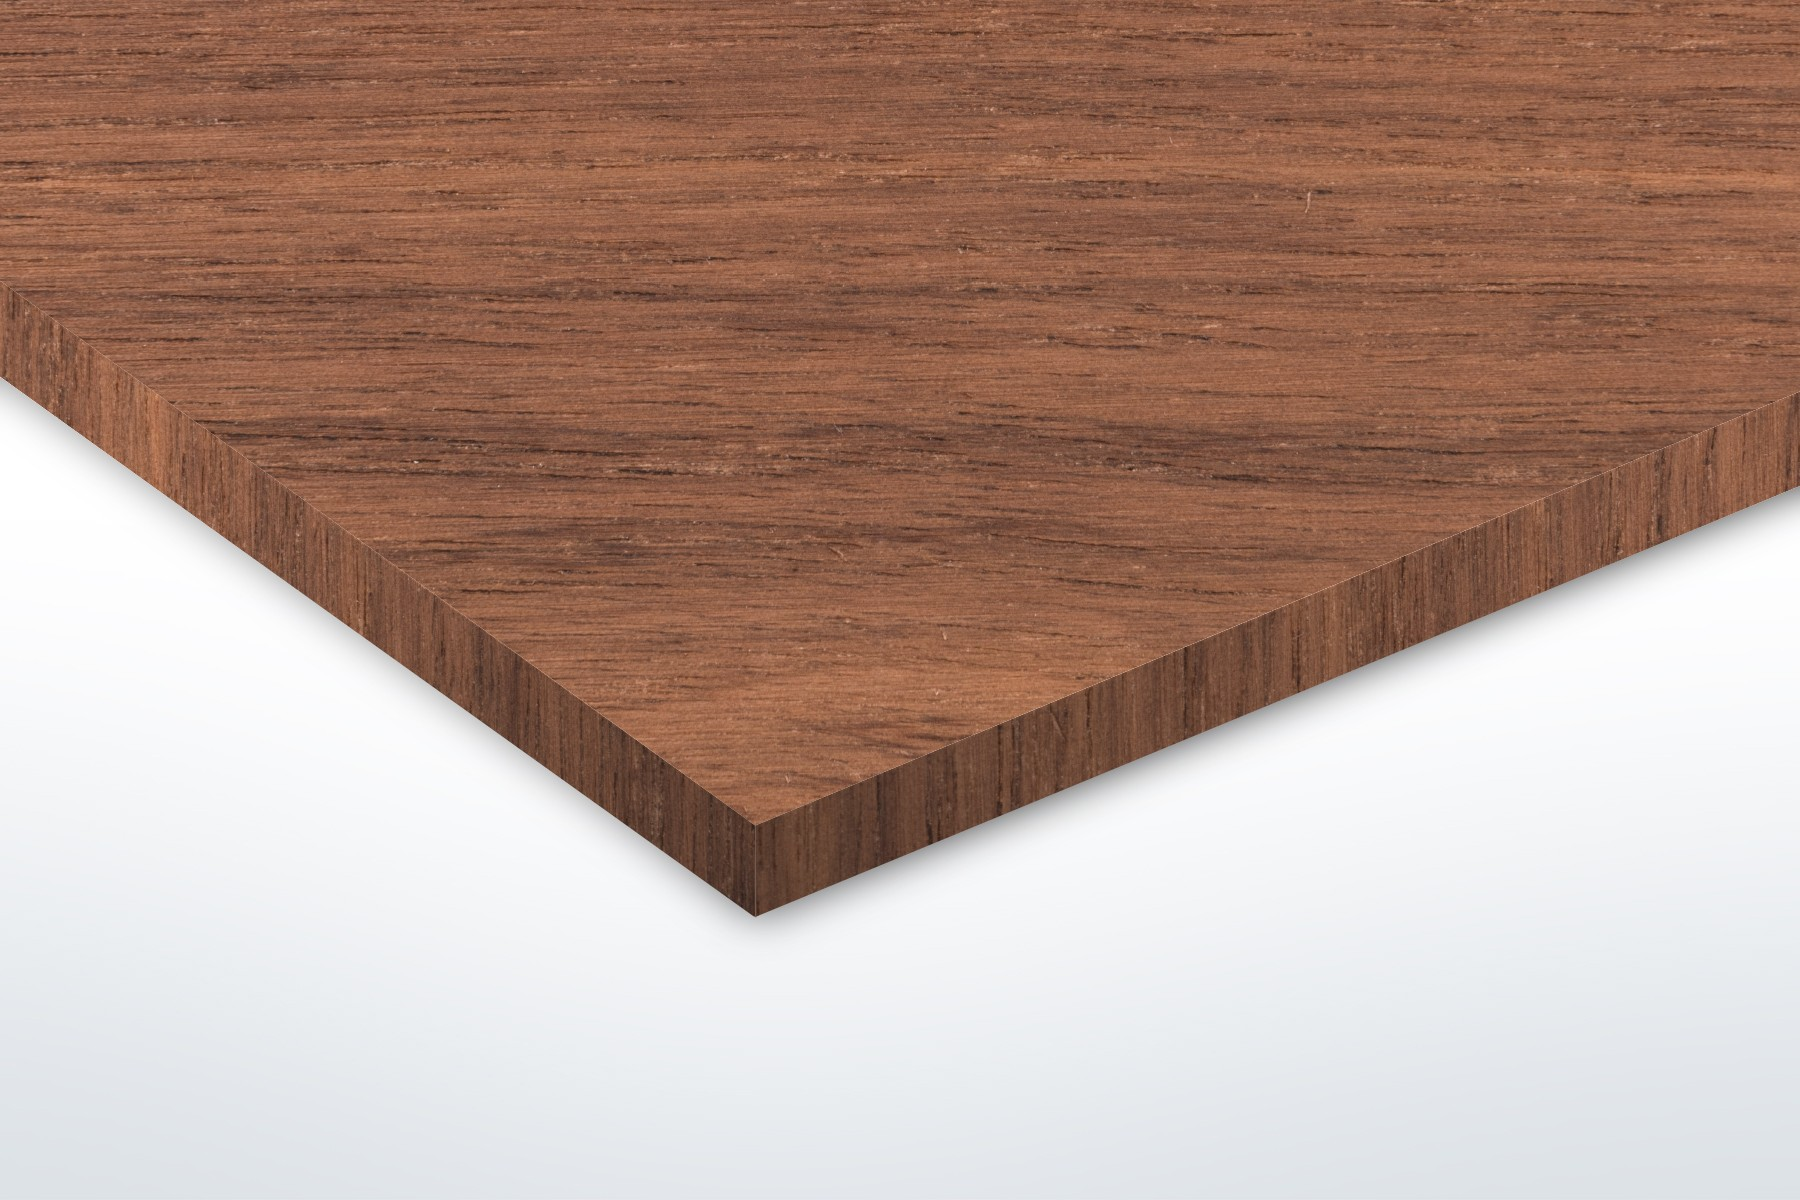 Walnut - 300 x 100mm - 5mm